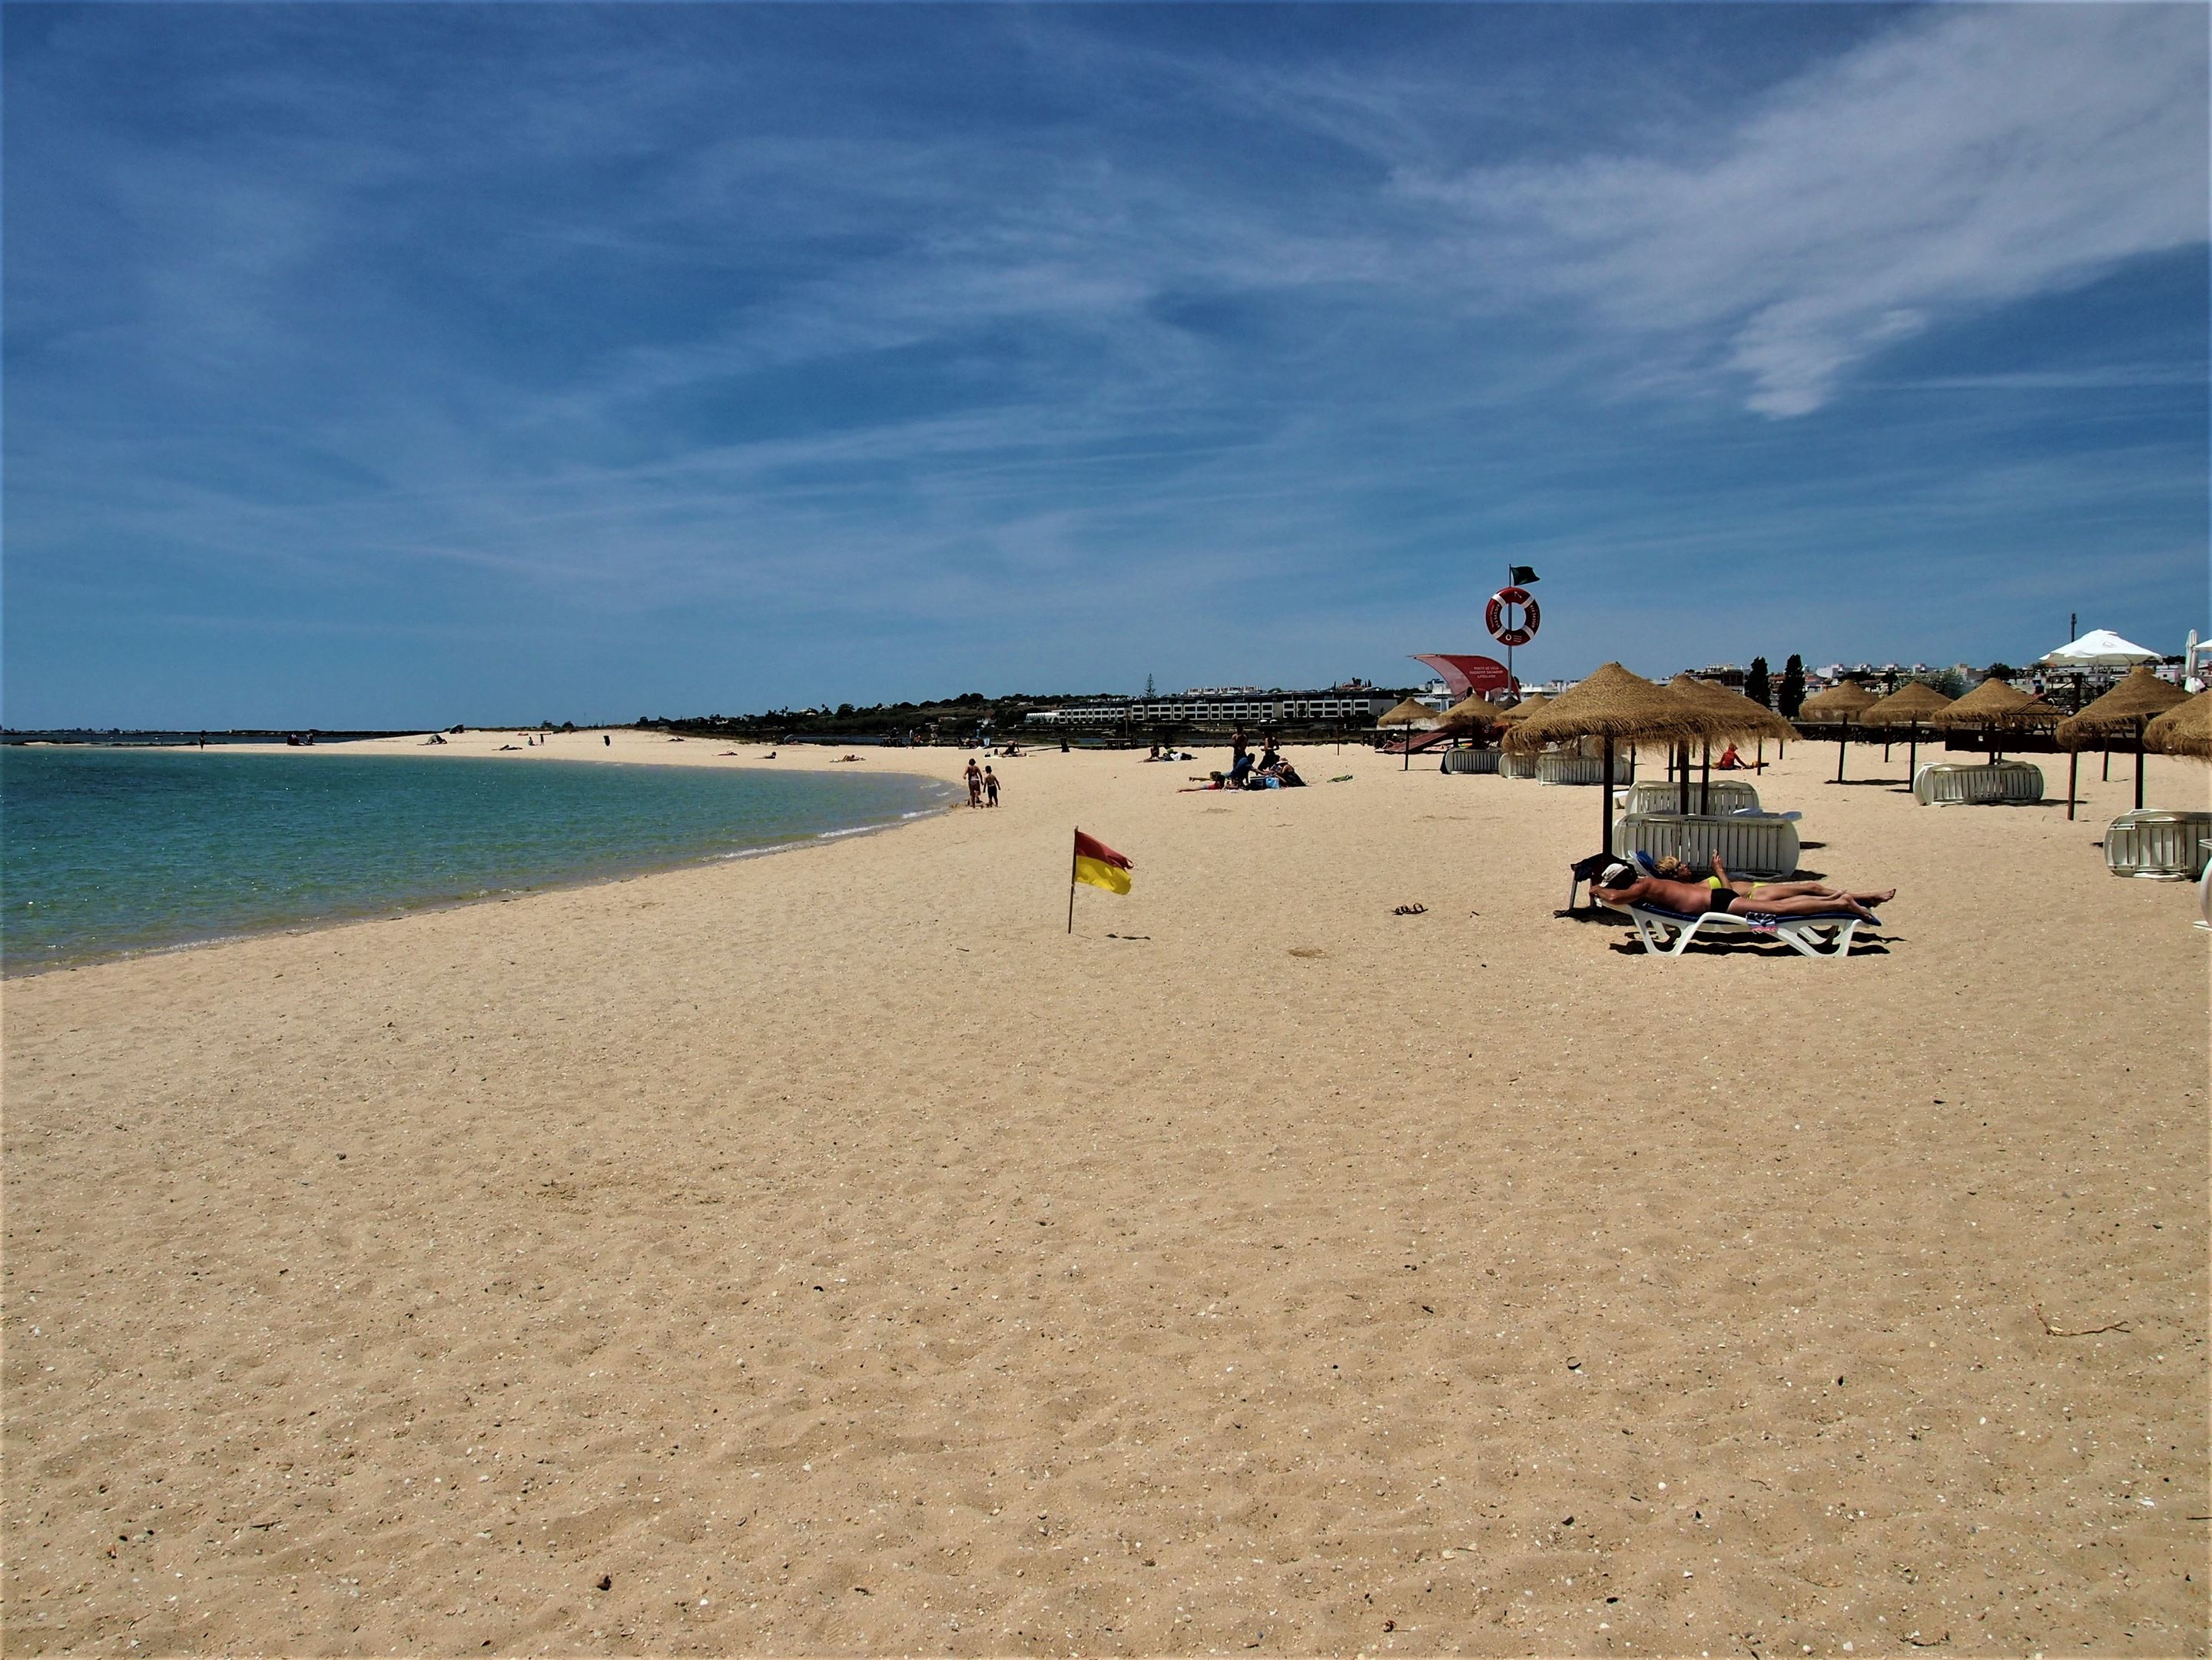 Praia da Fuseta-Ria, the main beach at Fuseta where the water is very calm, protected by the islands of the Ria Formosa